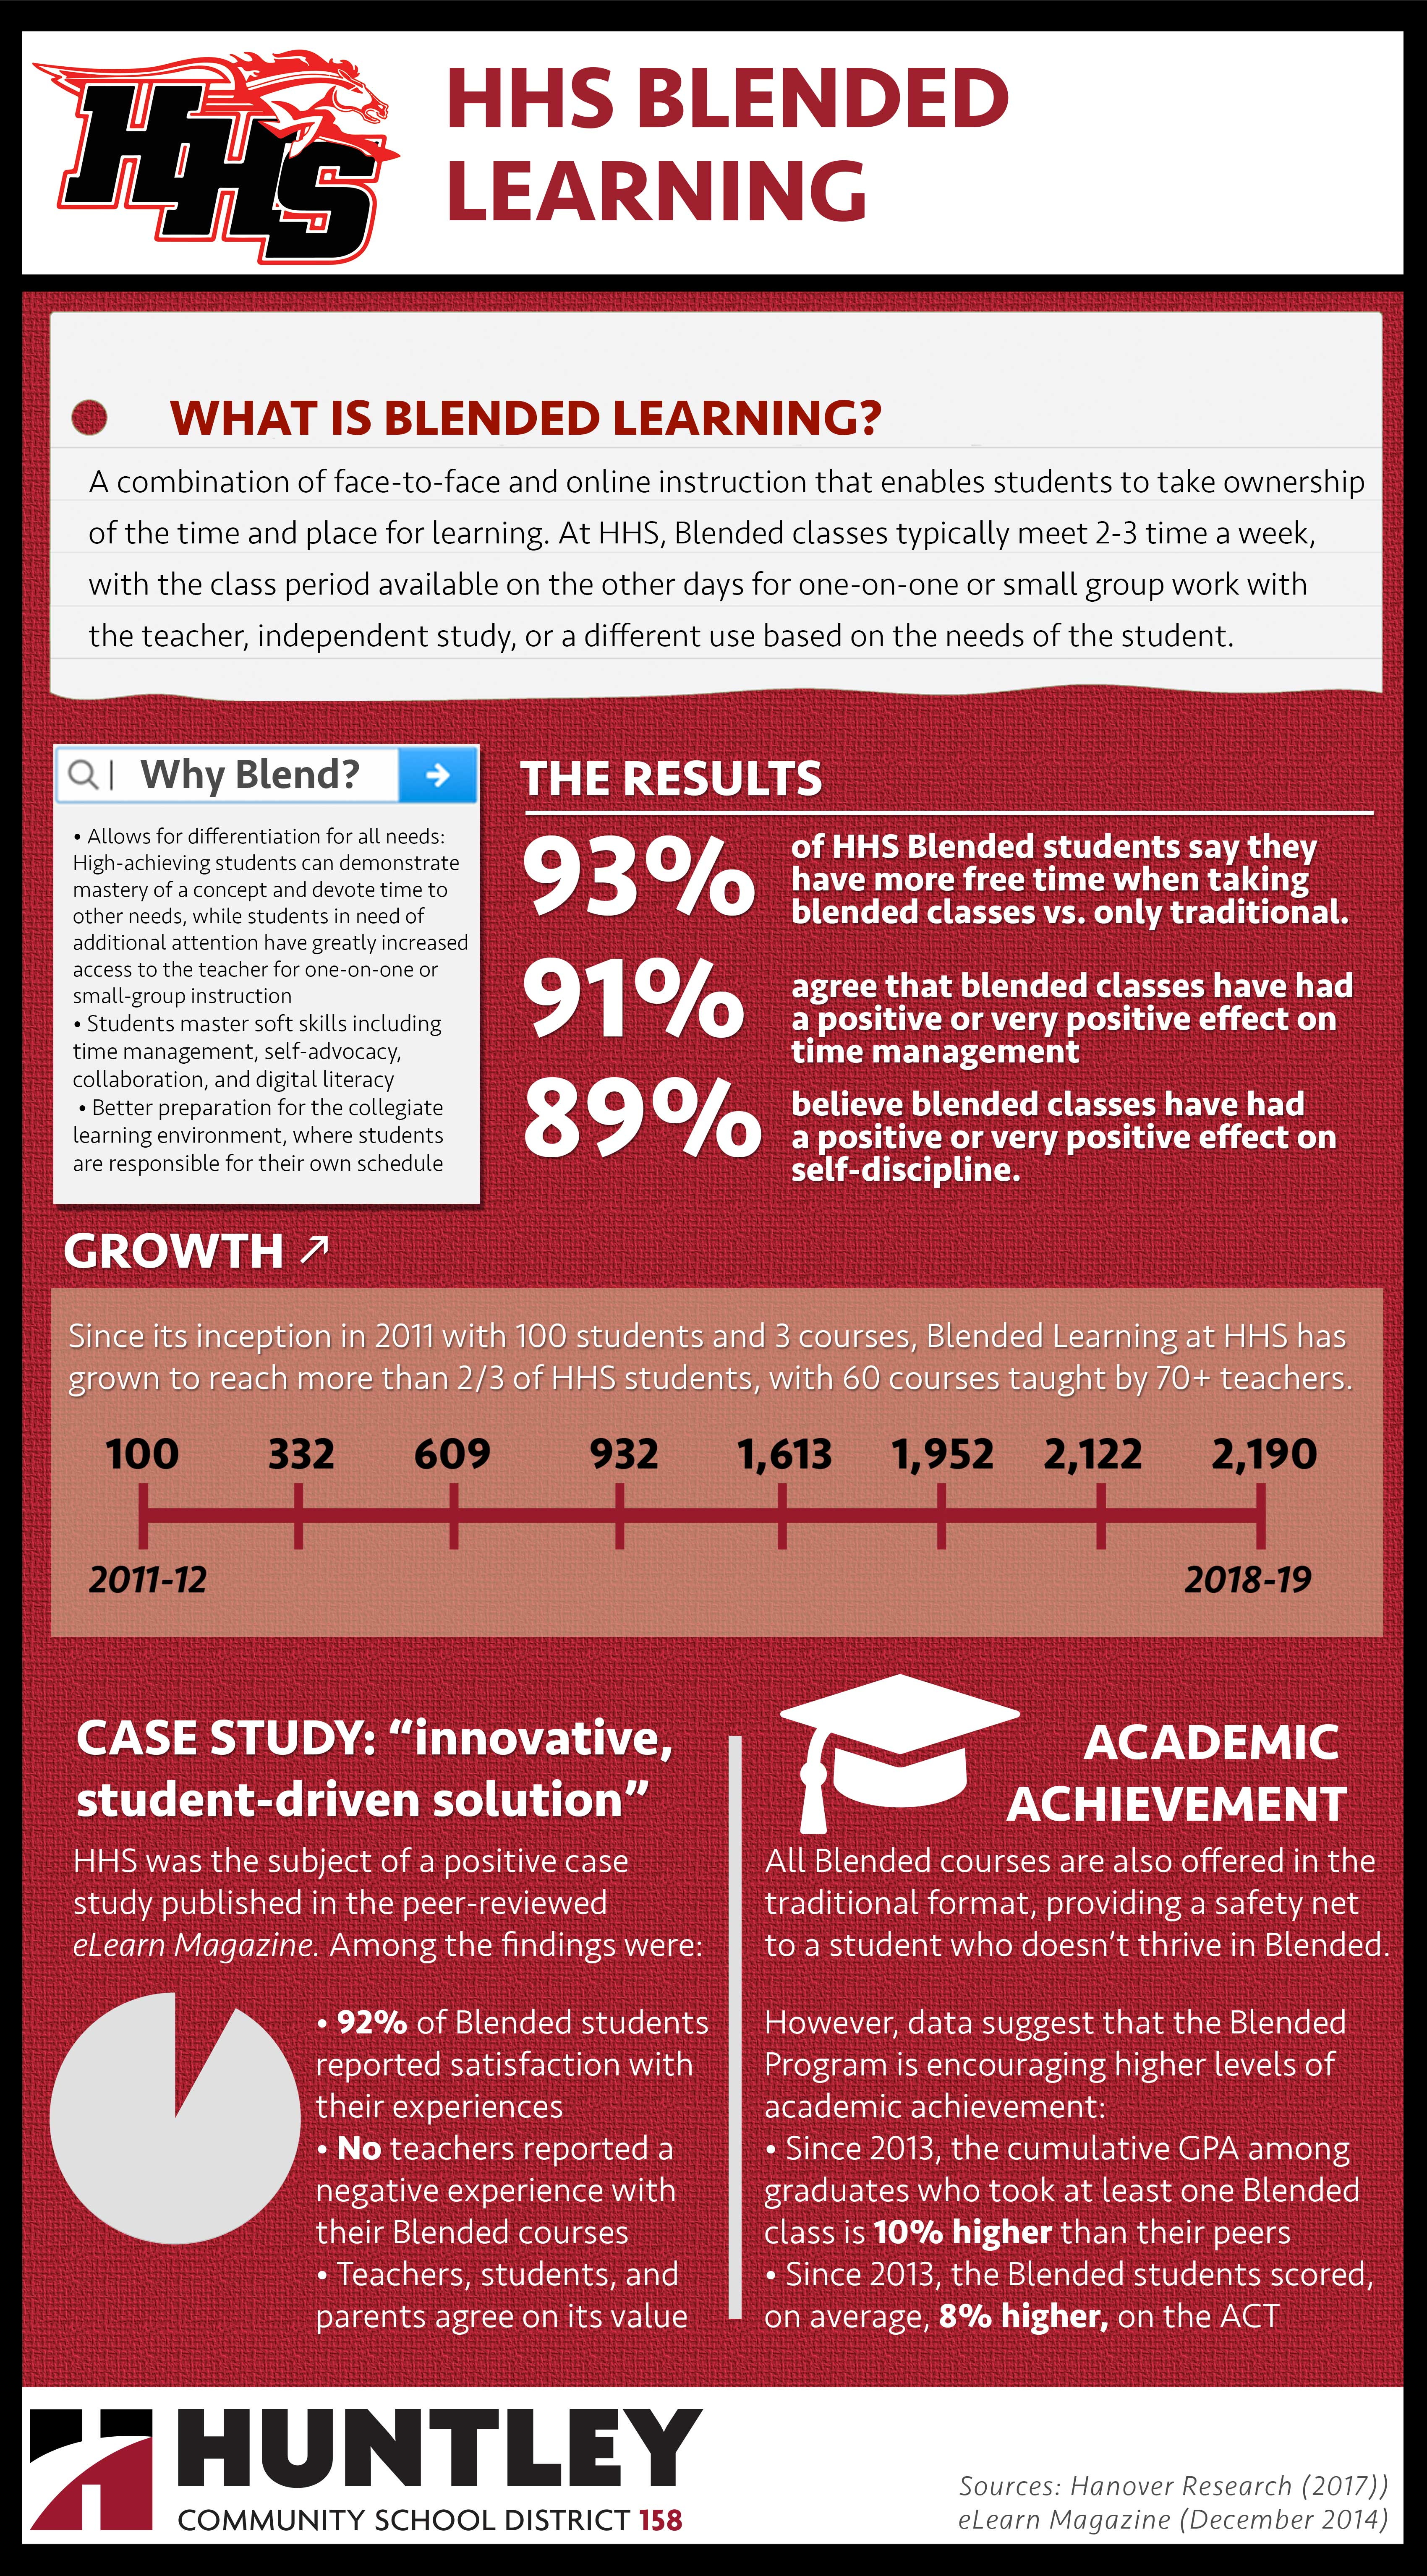 HHS Blended Learning Infographic